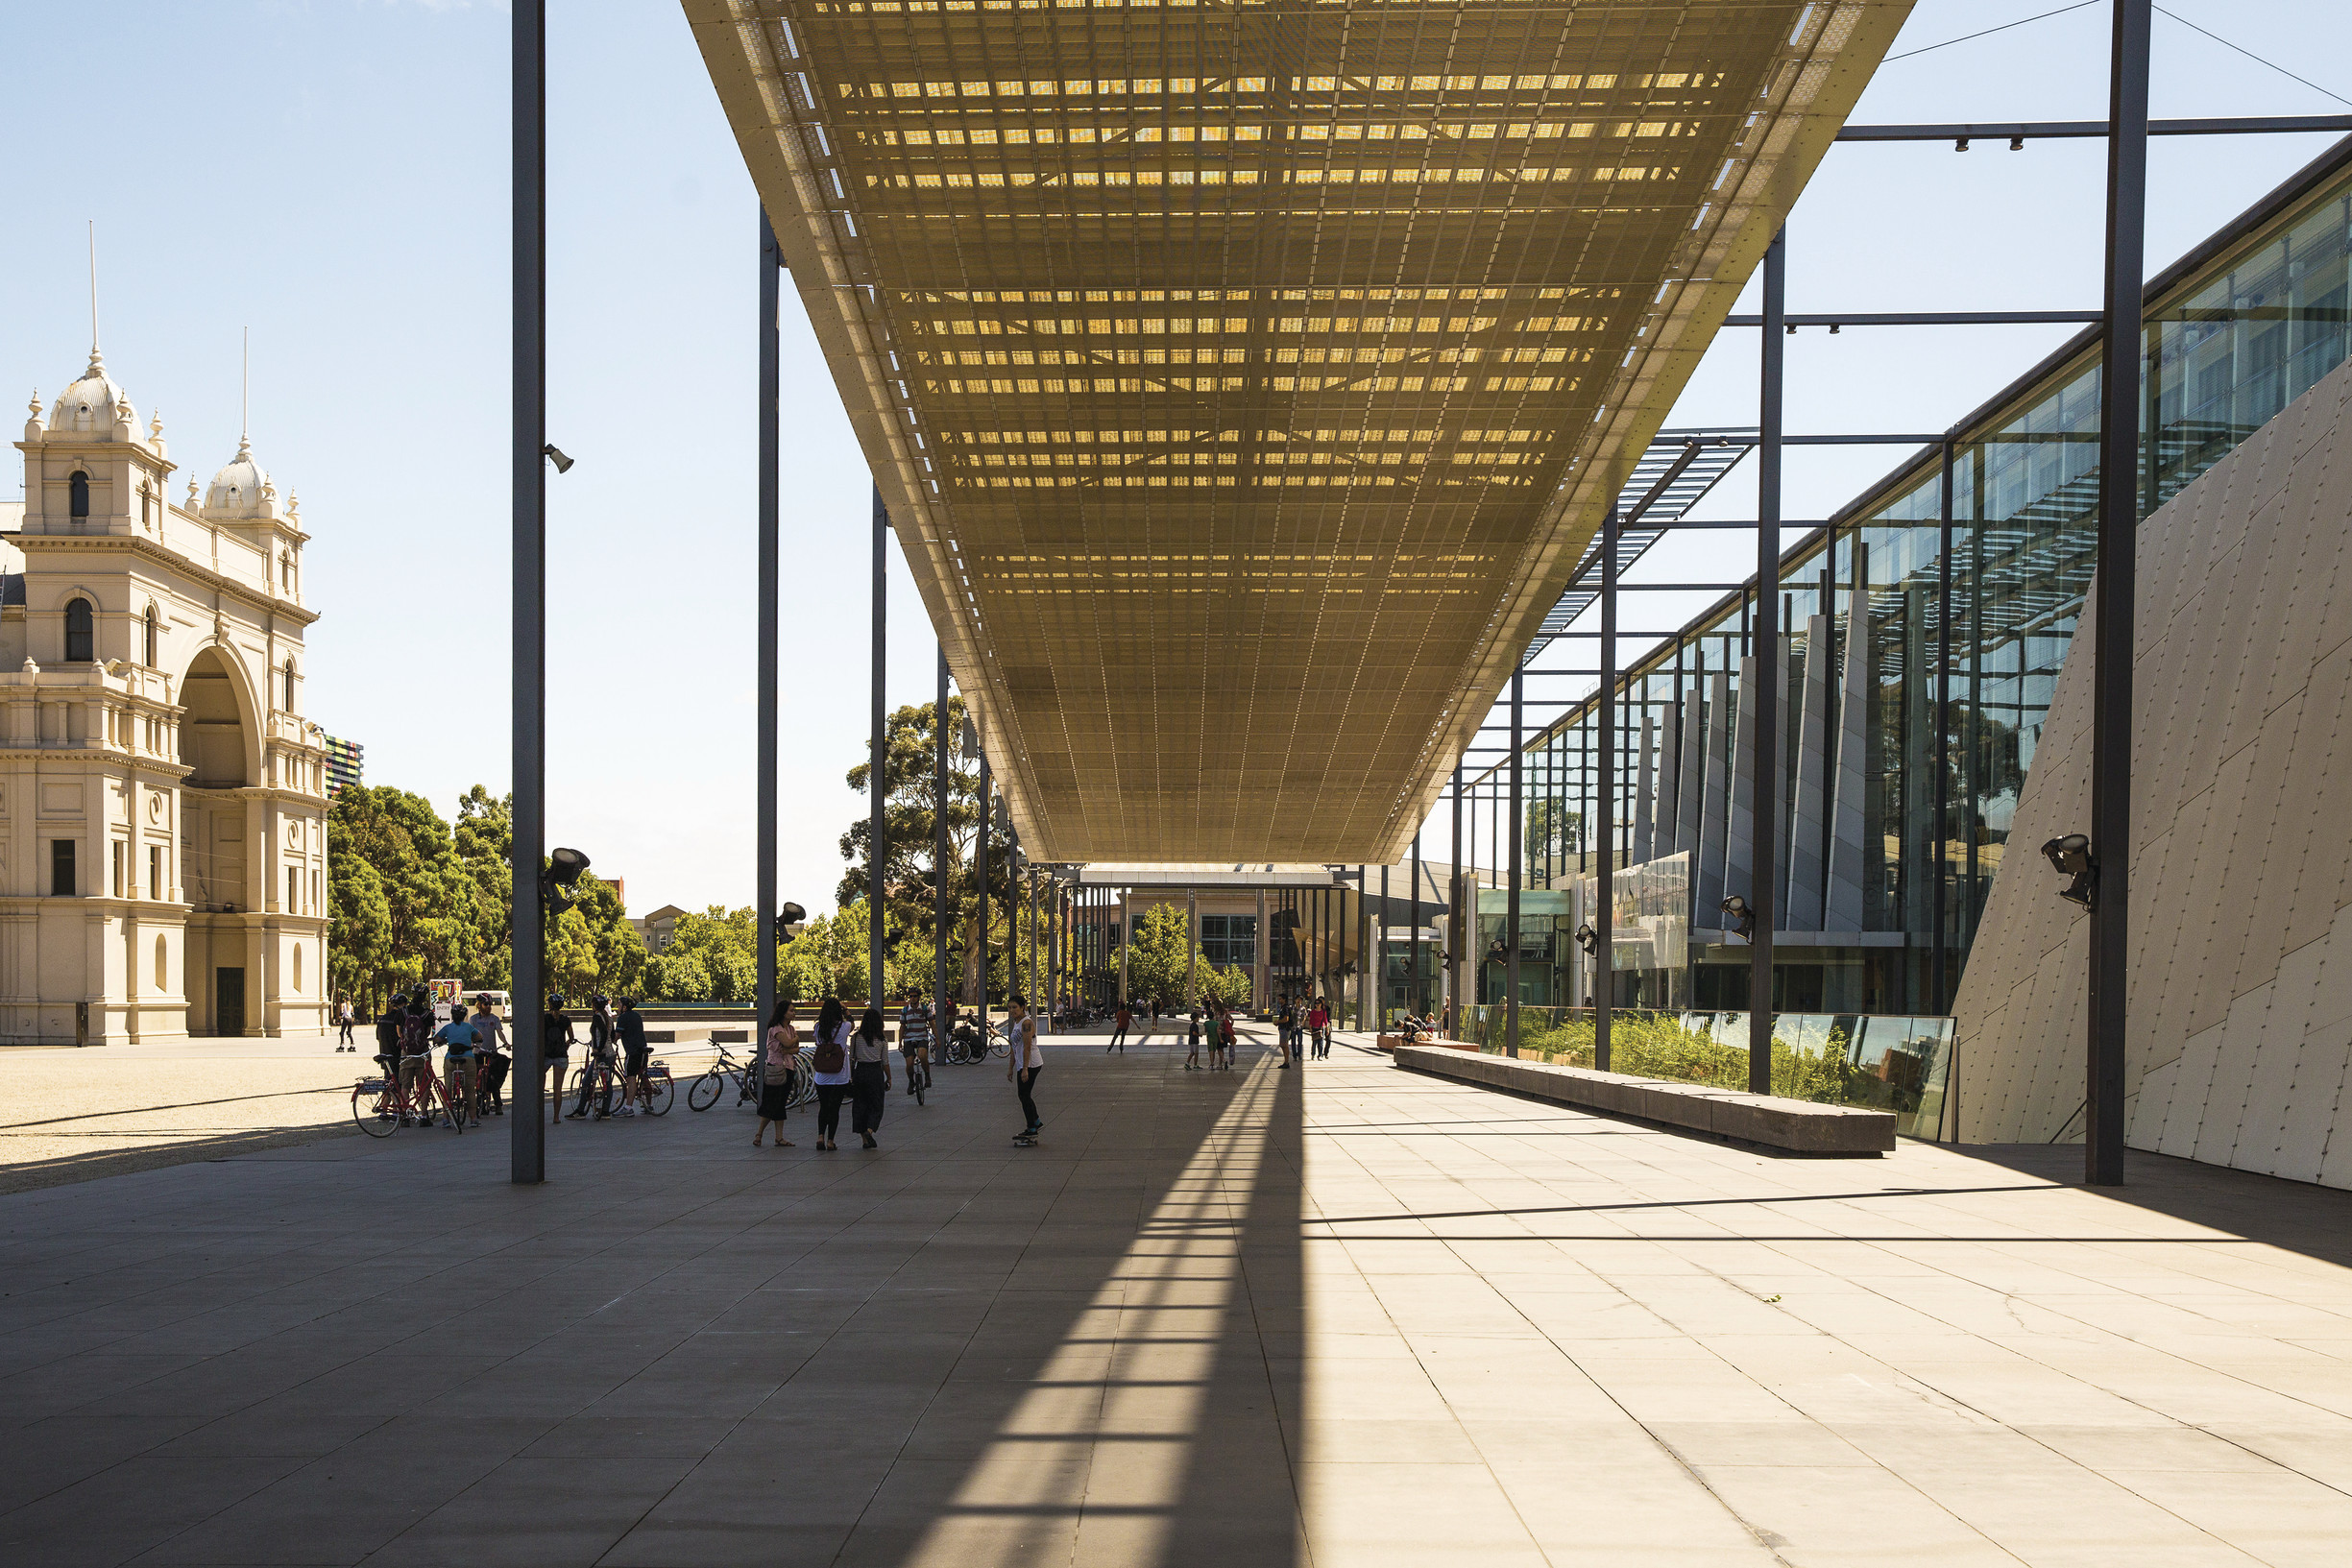 Exterior of the Melbourne Museum and Royal Exhibition Building.